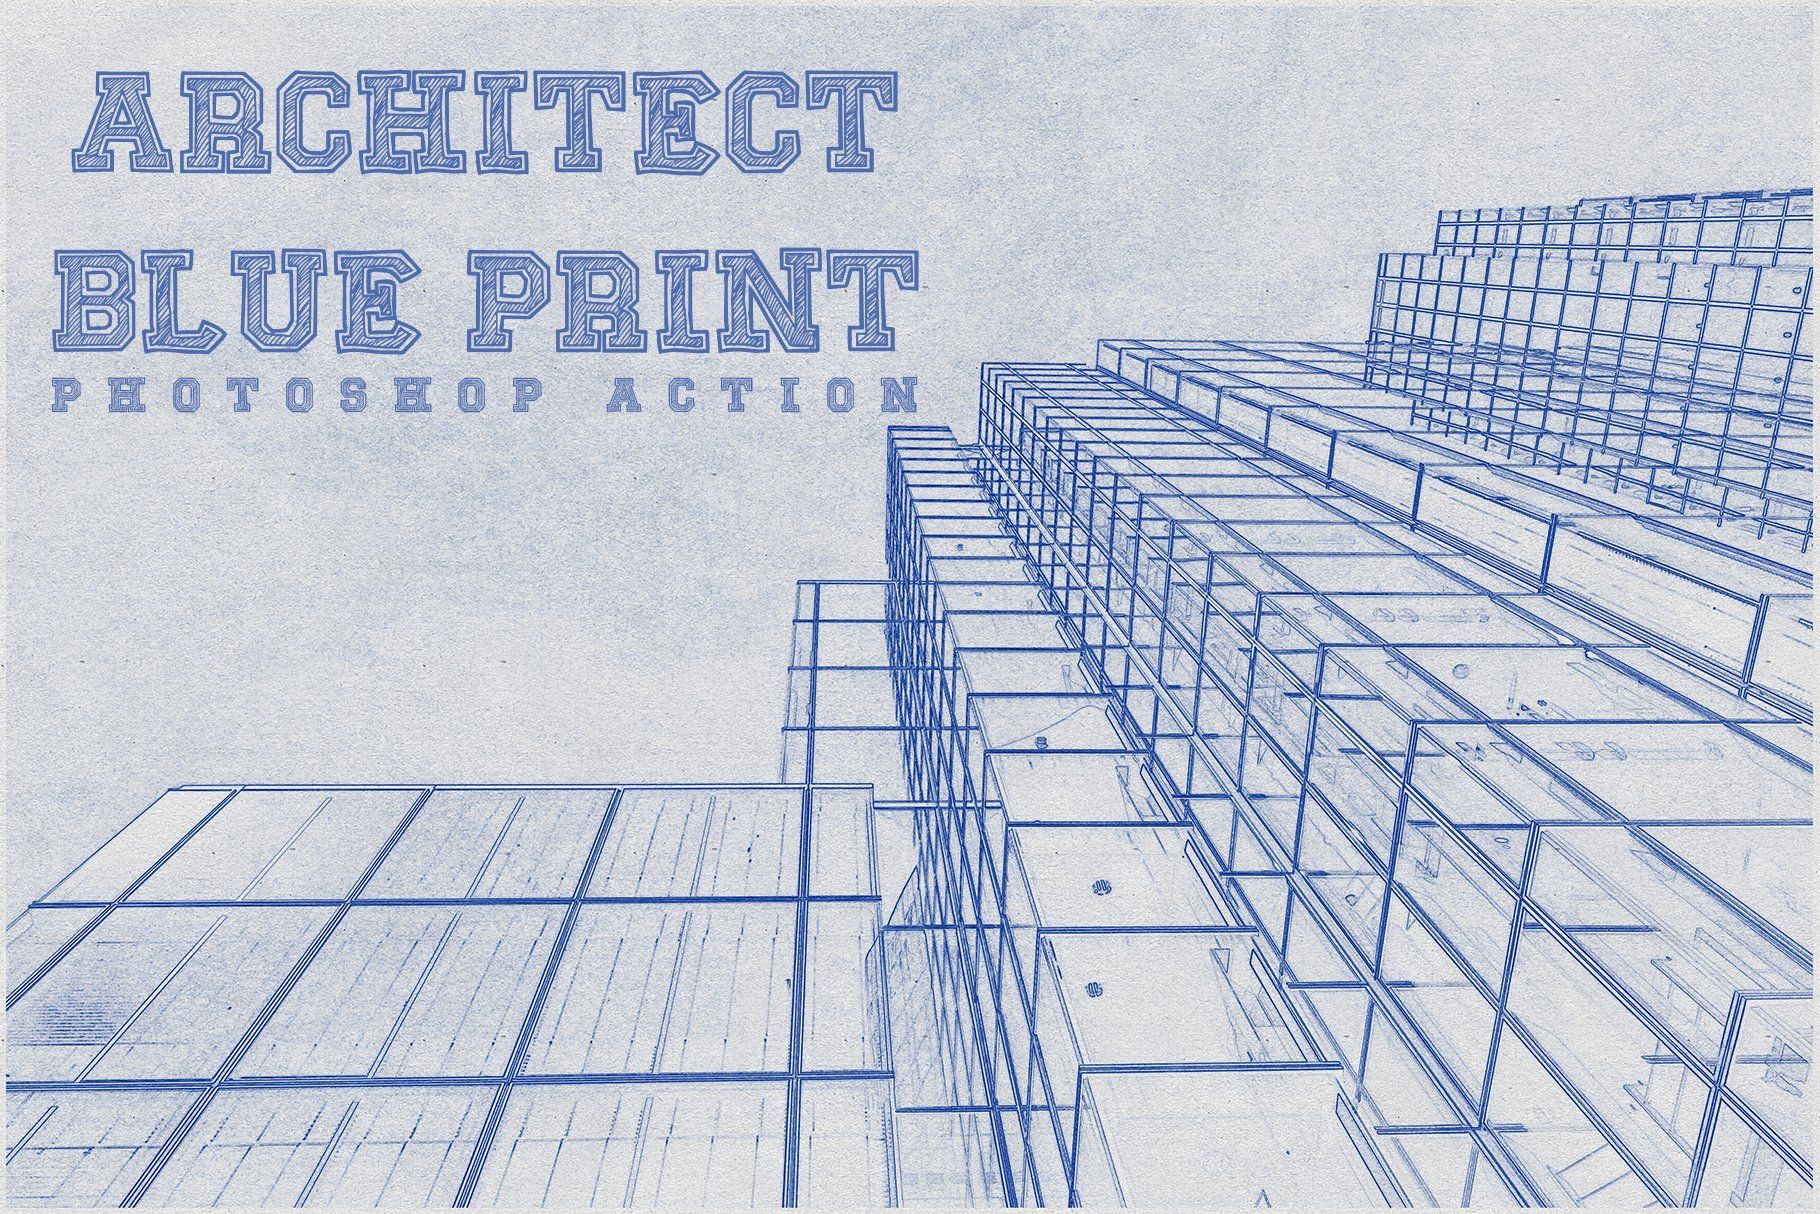 Architect Blueprint Photoshop Action With Images Photoshop